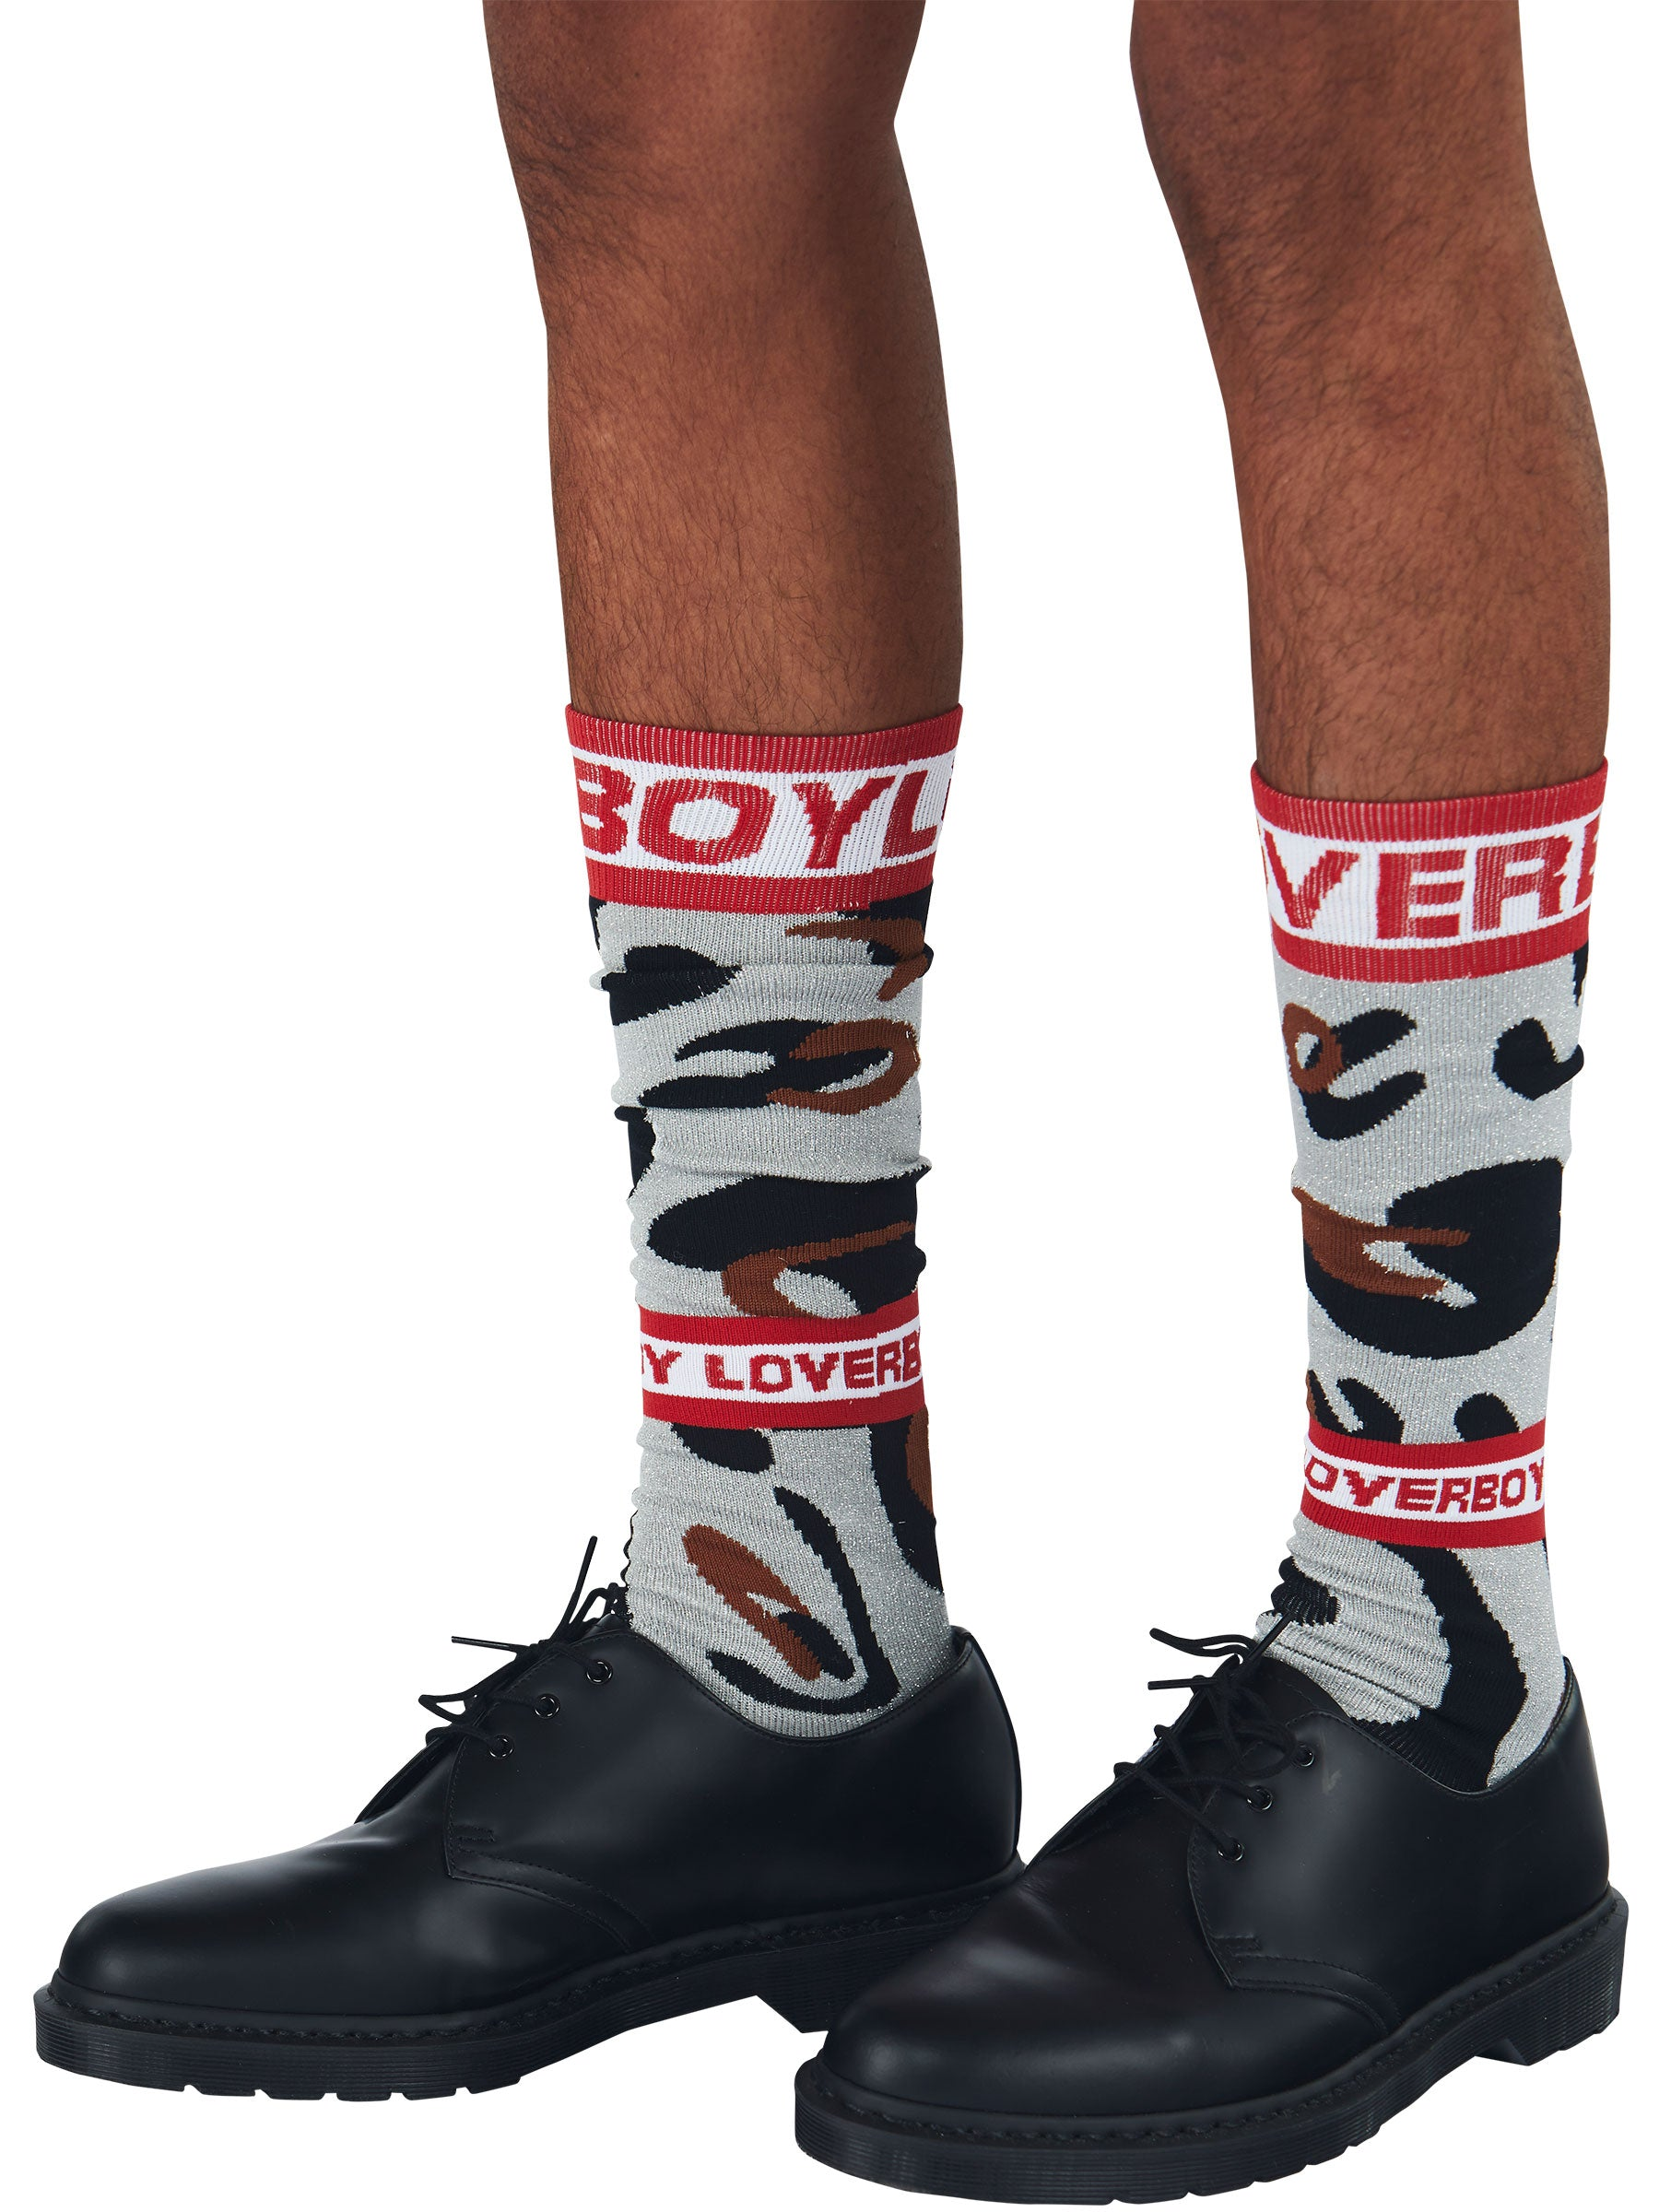 odd92 Charles Jeffrey Loverboy Fall/Winter 2019 Lurex Monster Socks - 2